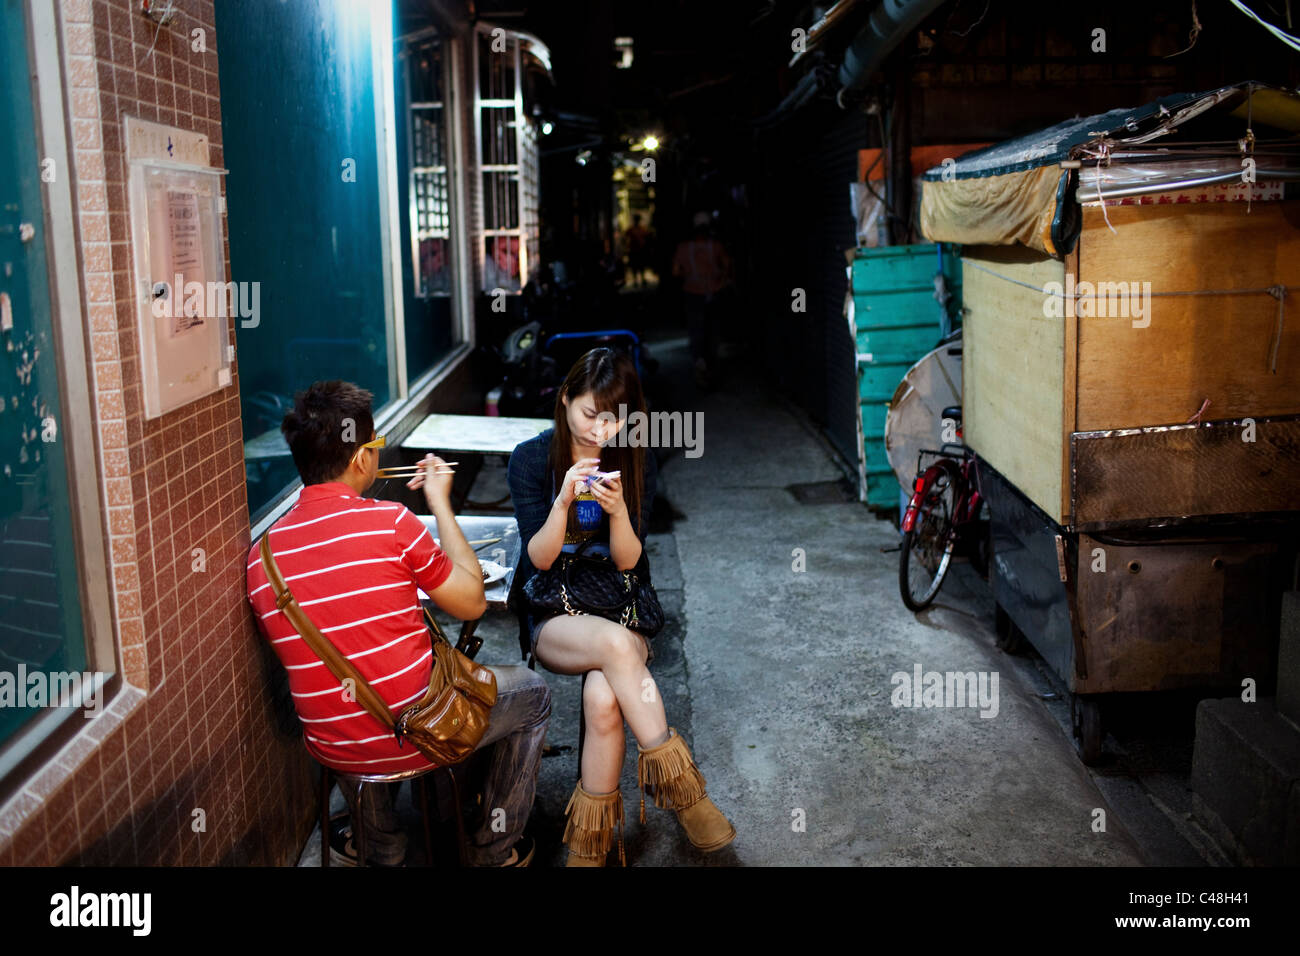 While eating with her boyfriend, a teenage girl texts in an alley at Shilin Night Market, Taipei, Taiwan, October - Stock Image